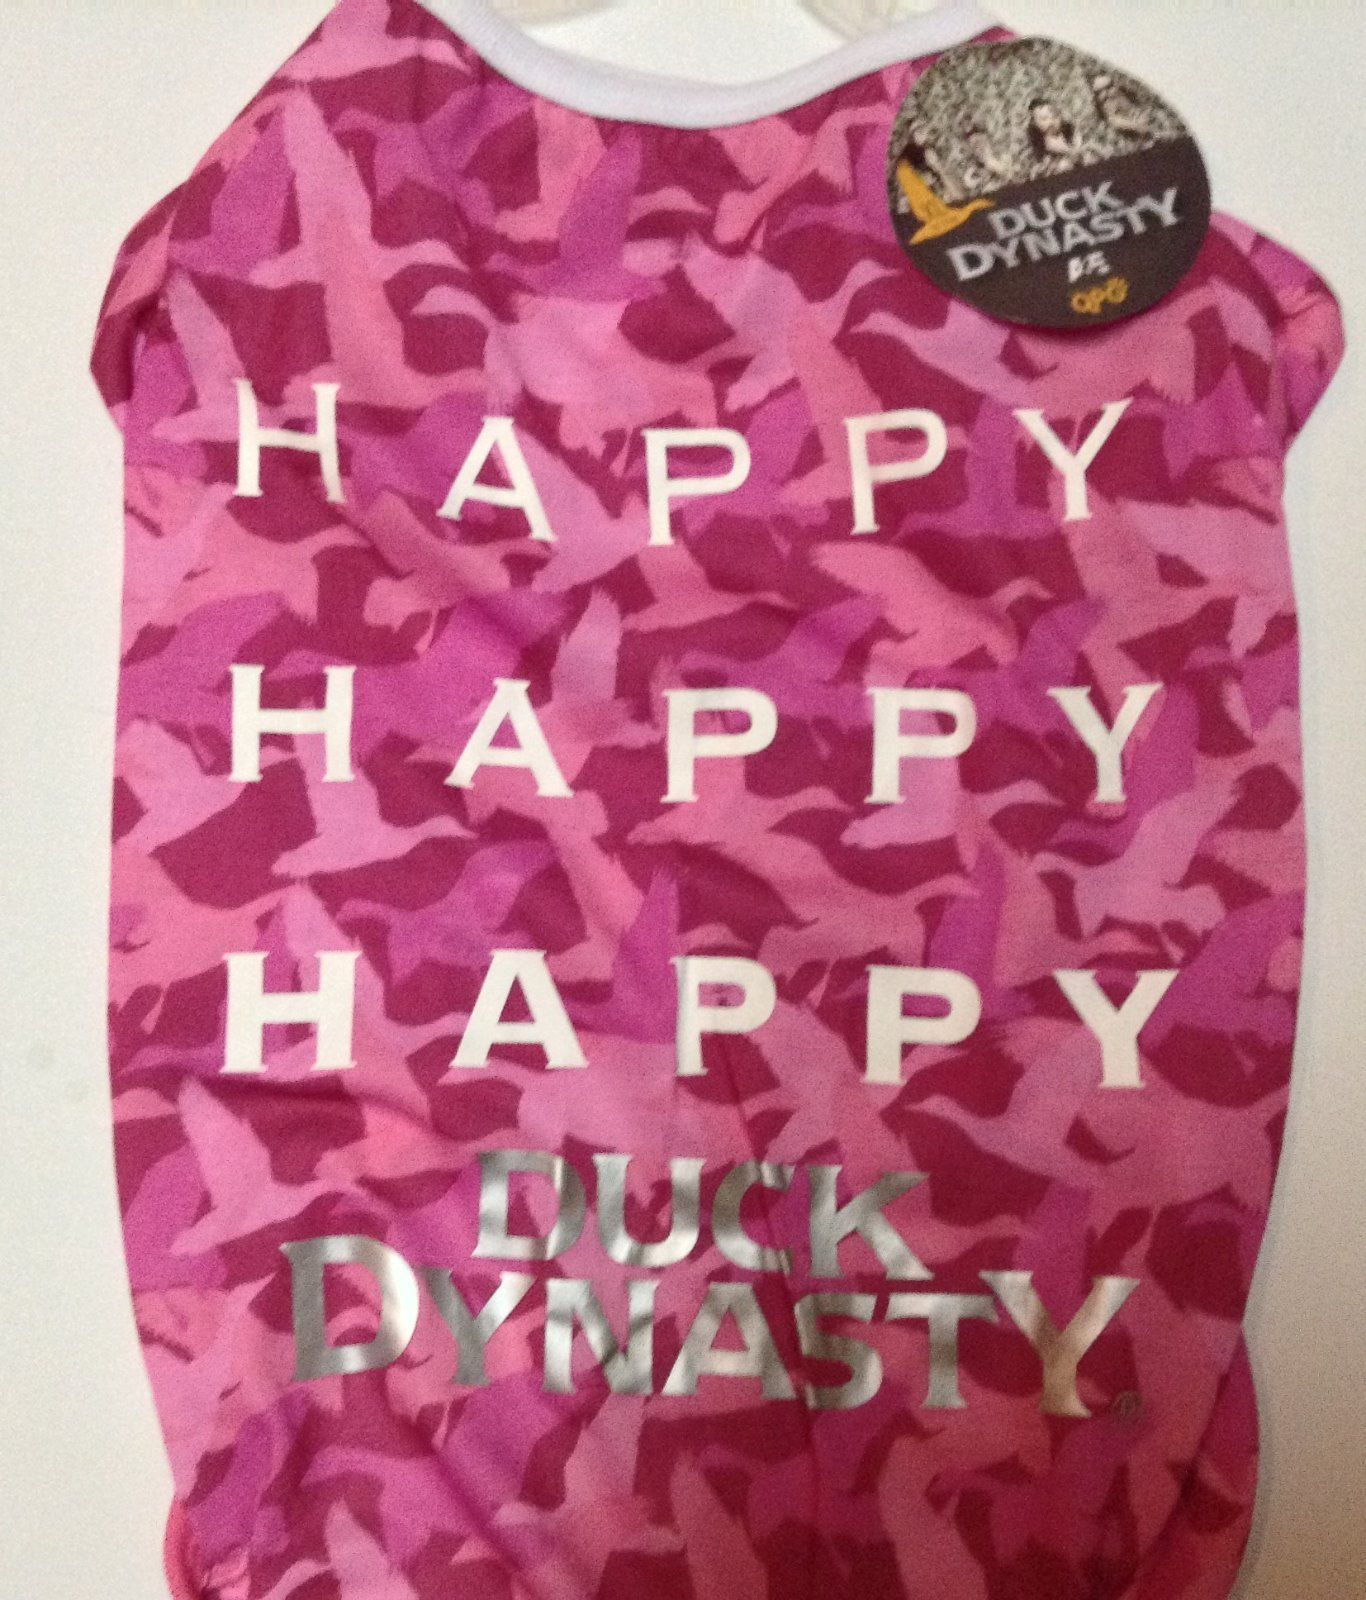 Pink Duck Dynasty Pet Shirt NWT Sz Large 16-18 HAPPY HAPPY